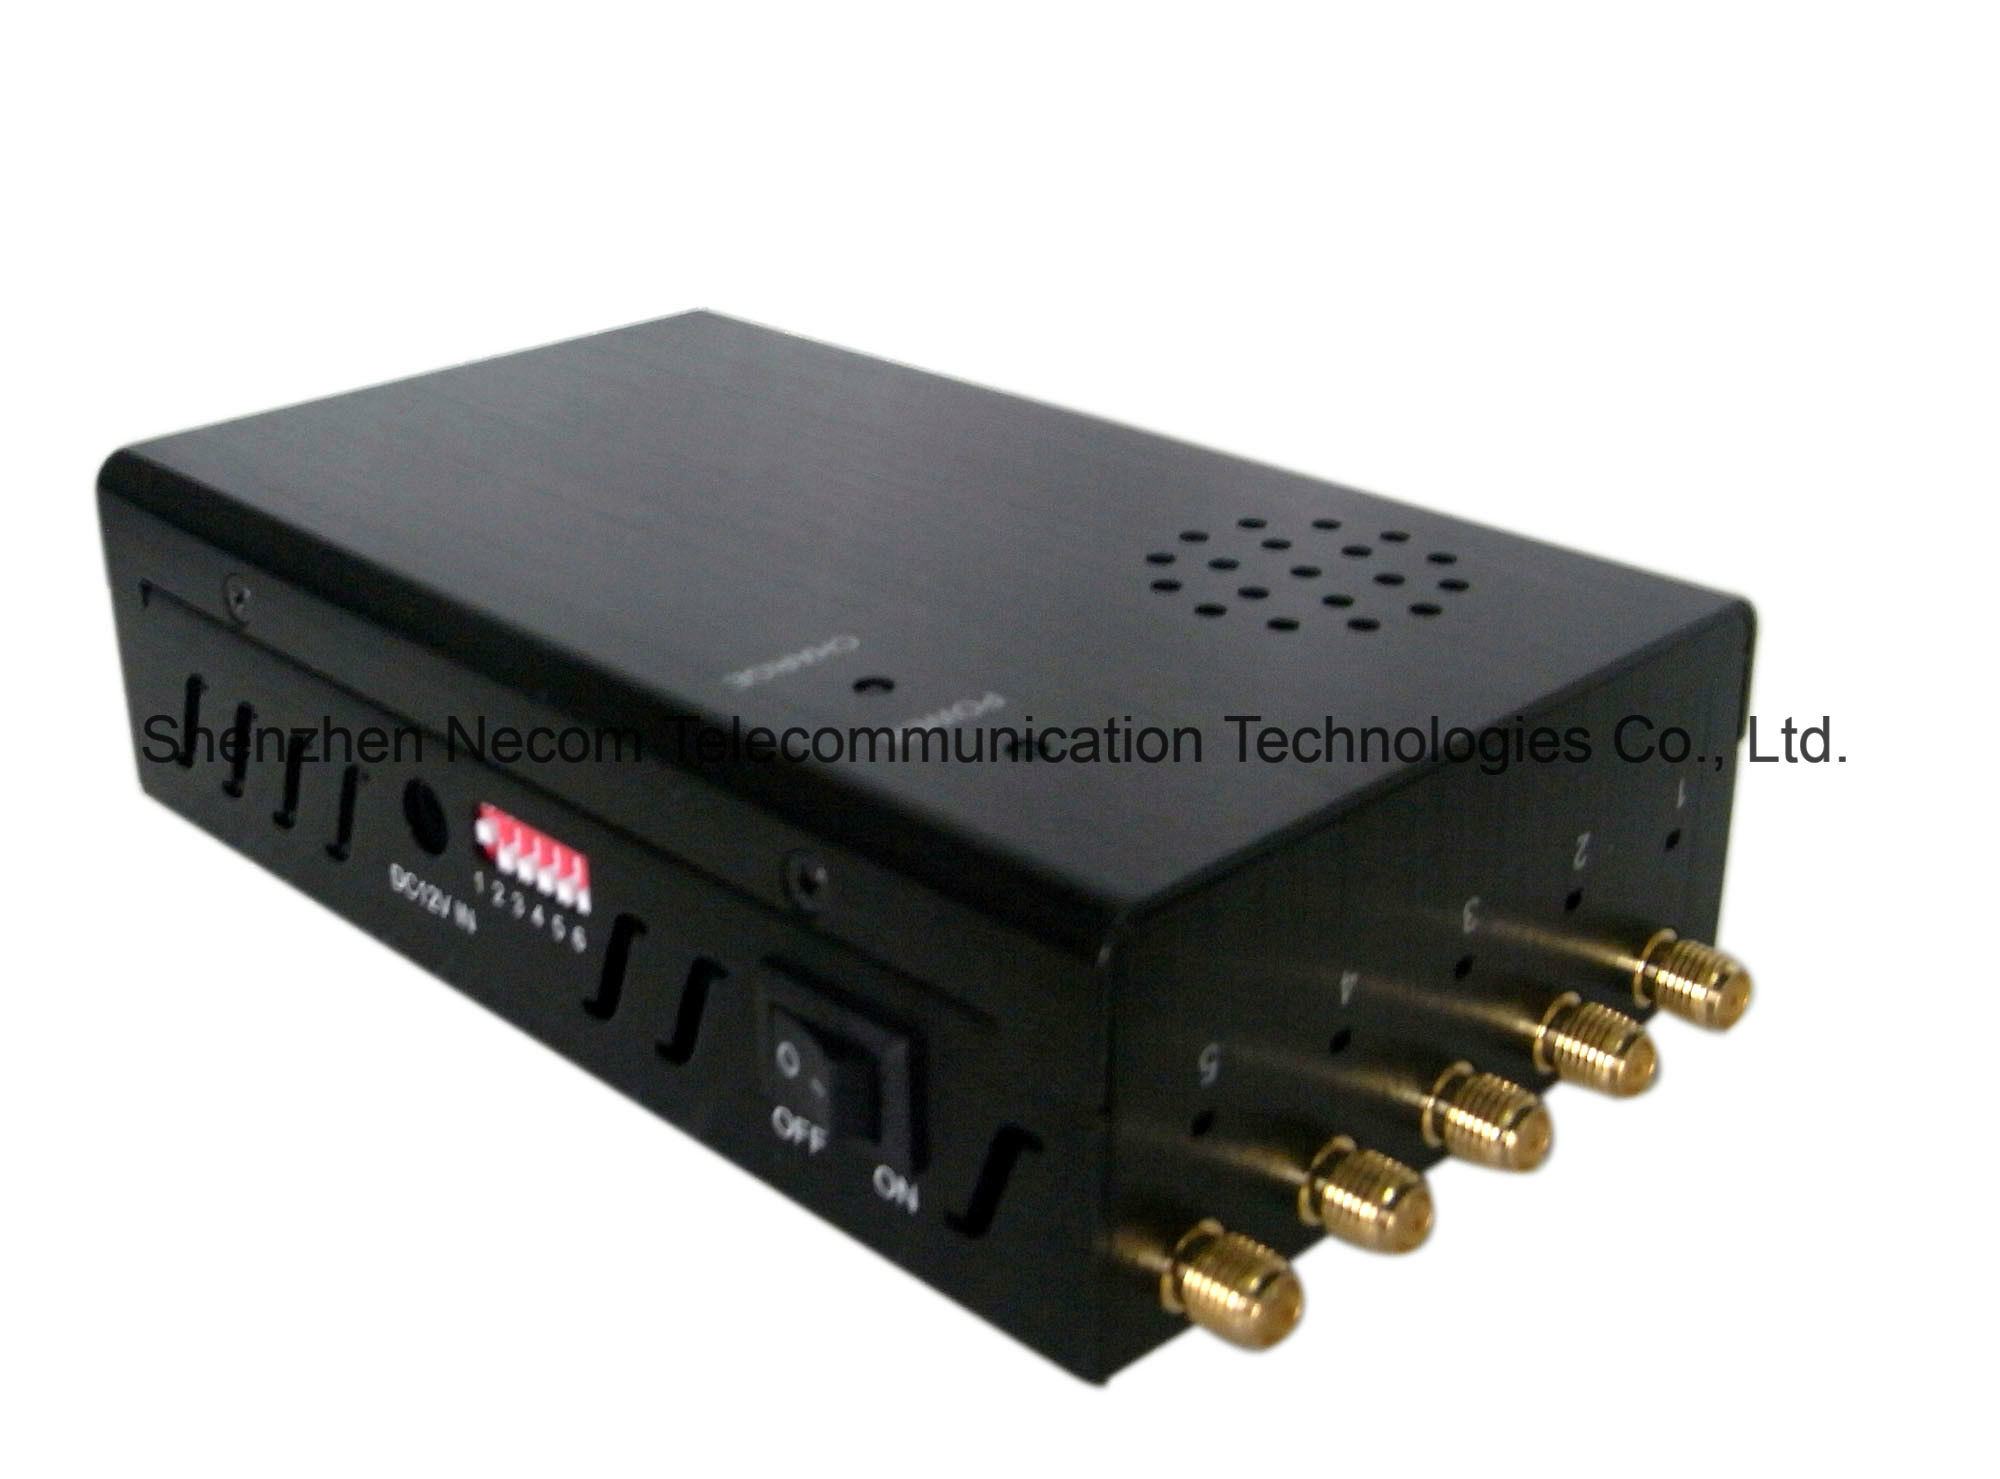 3g gsm jammer - gsm blocker jammers passwords